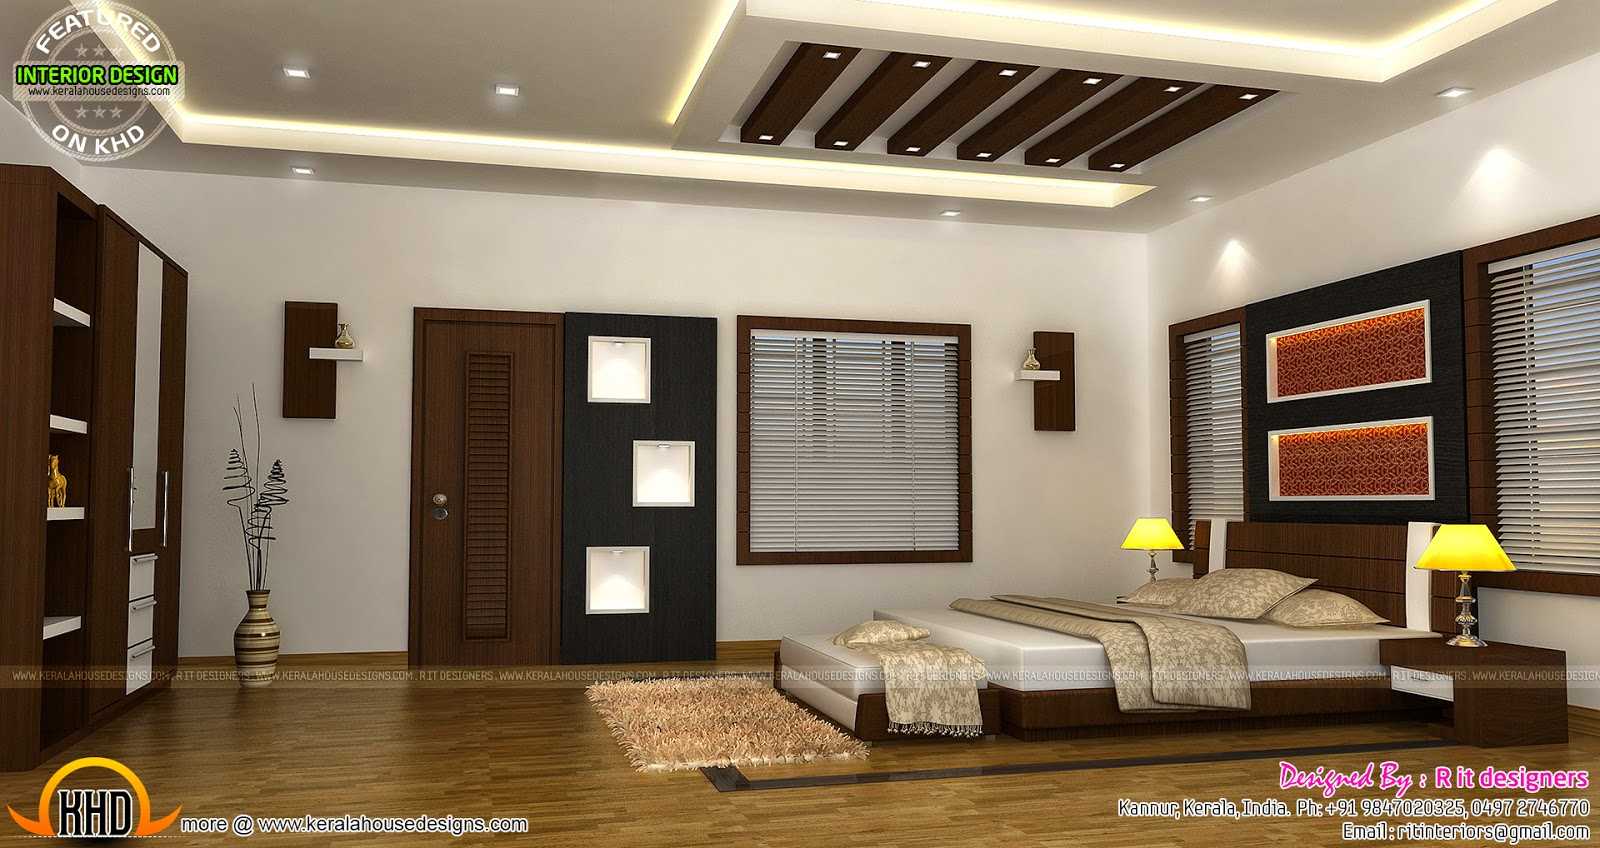 Bedroom interior design with cost kerala home design and for House design photos interior design